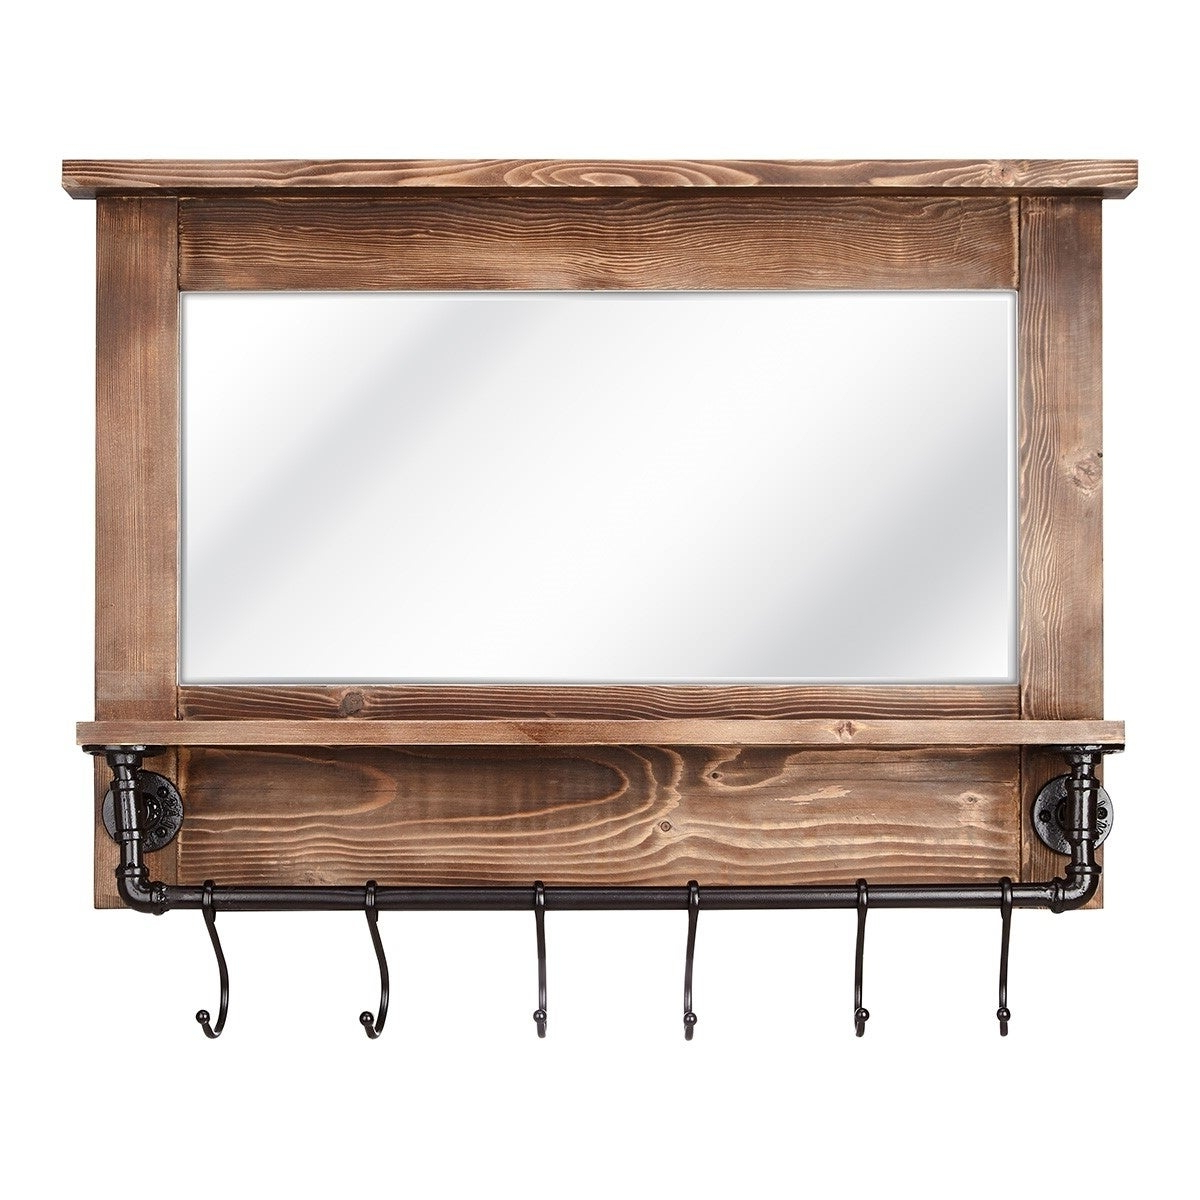 Recent Imax Afia Brown Wood Frame Wall Mirror With Shelf And Hooks Within Wall Mirrors With Shelf And Hooks (View 6 of 20)